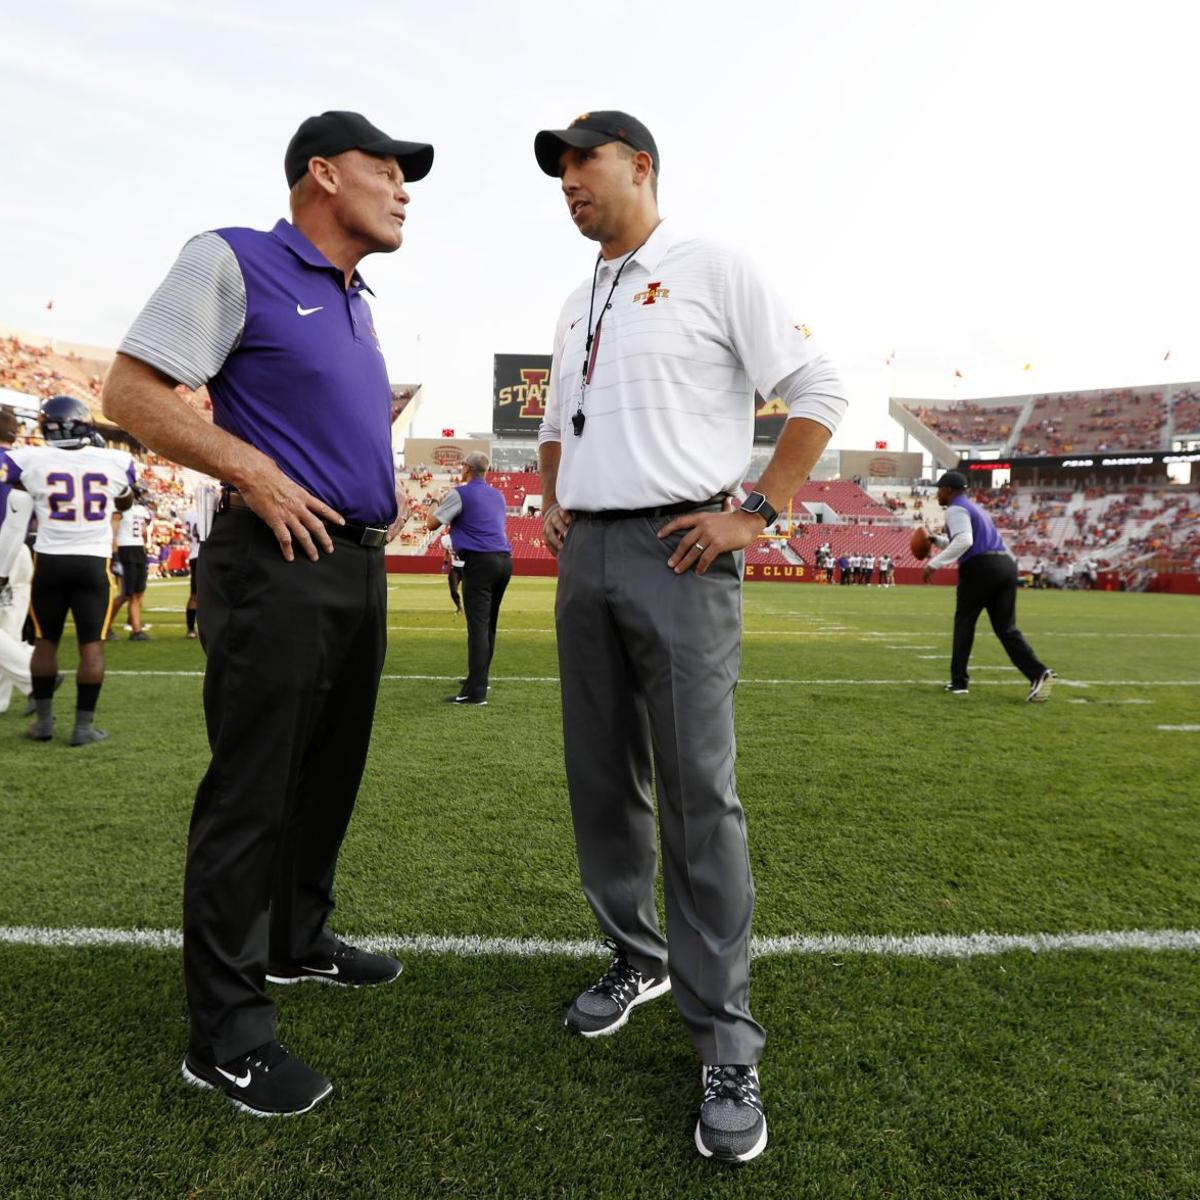 UNI football: Panthers say it is time to play | PantherMania